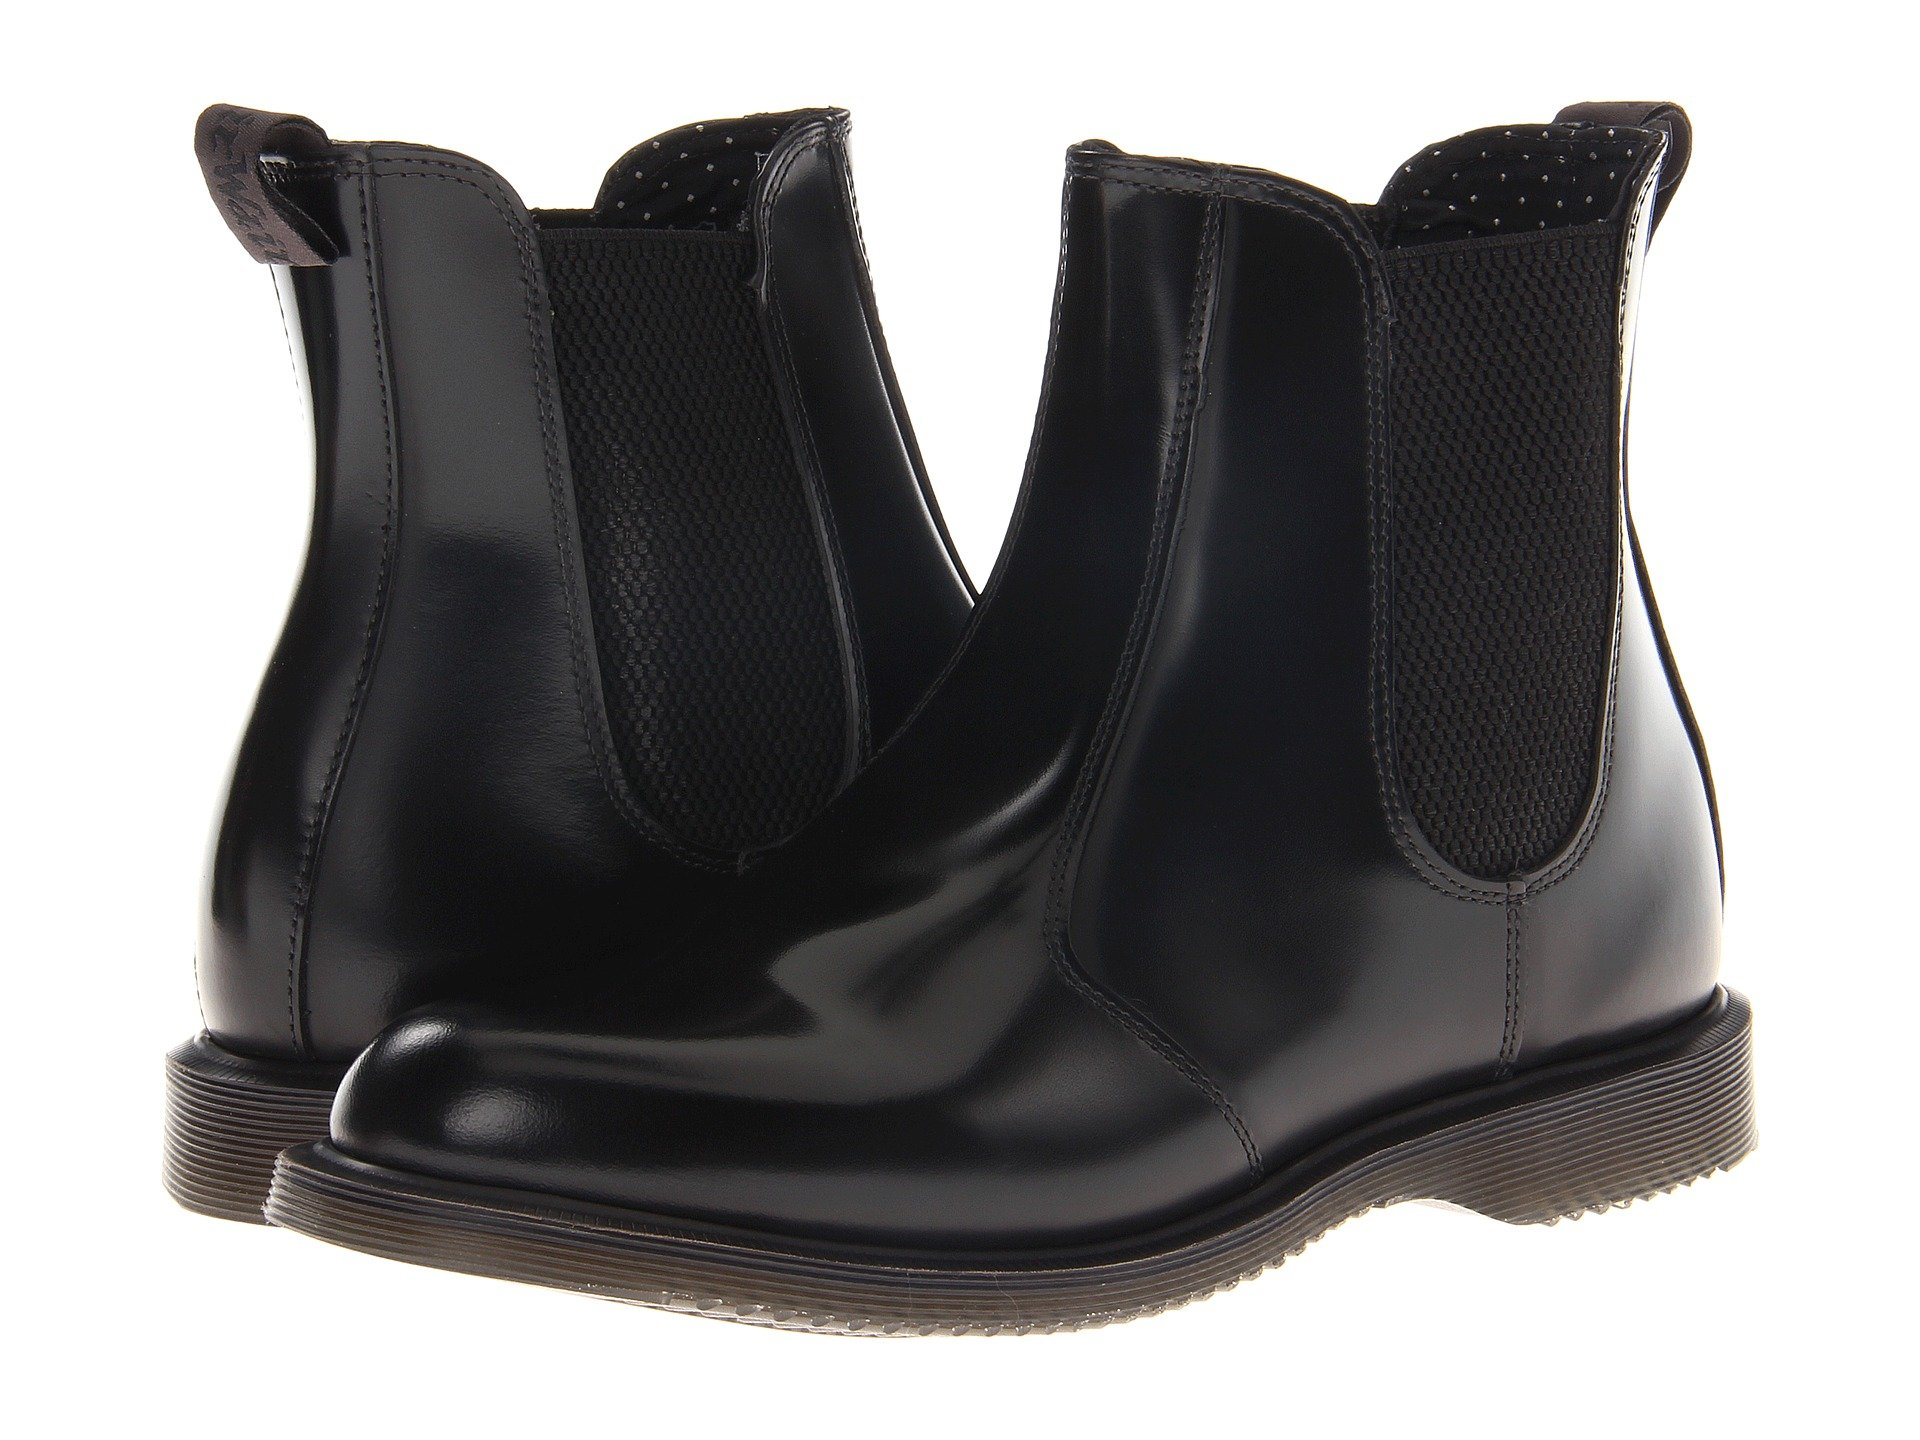 Dr Martens Flora Chelsea Boot At Zappos Com